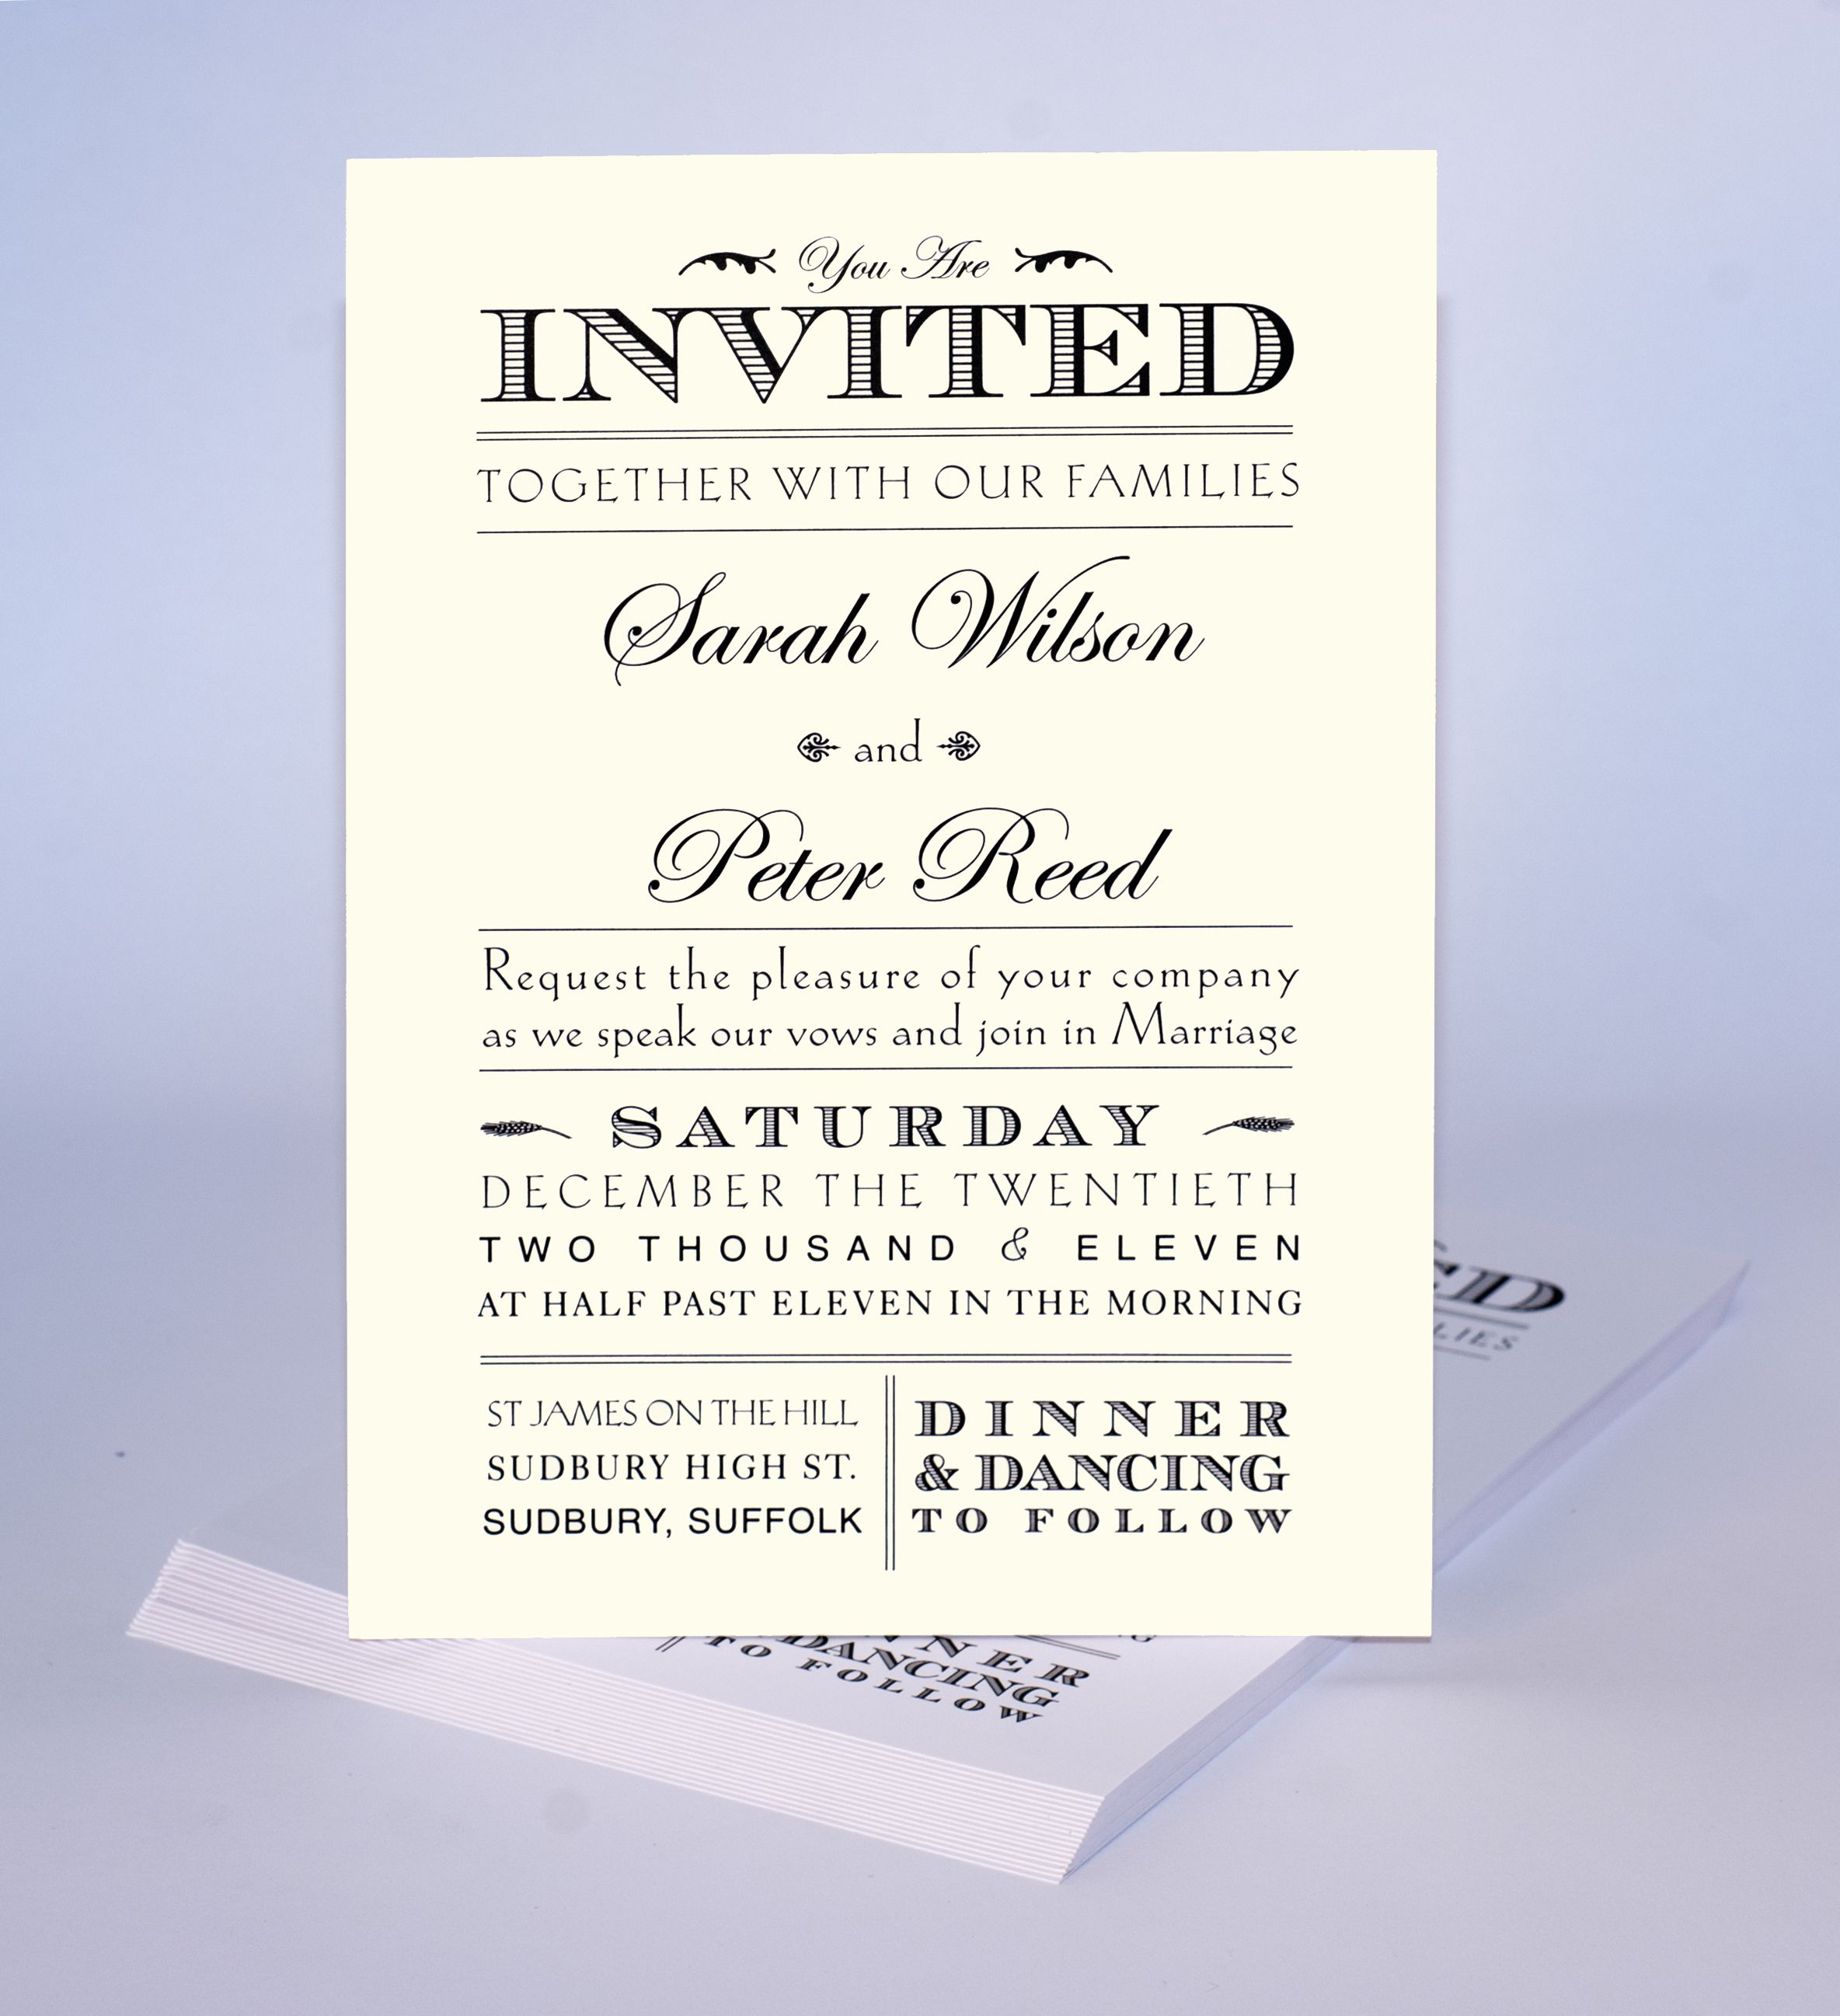 Wedding ideas wedding invite samples for public sample wedding wedding ideas wedding invite samples for public sample wedding invitations with formal and informal wedding stopboris Image collections